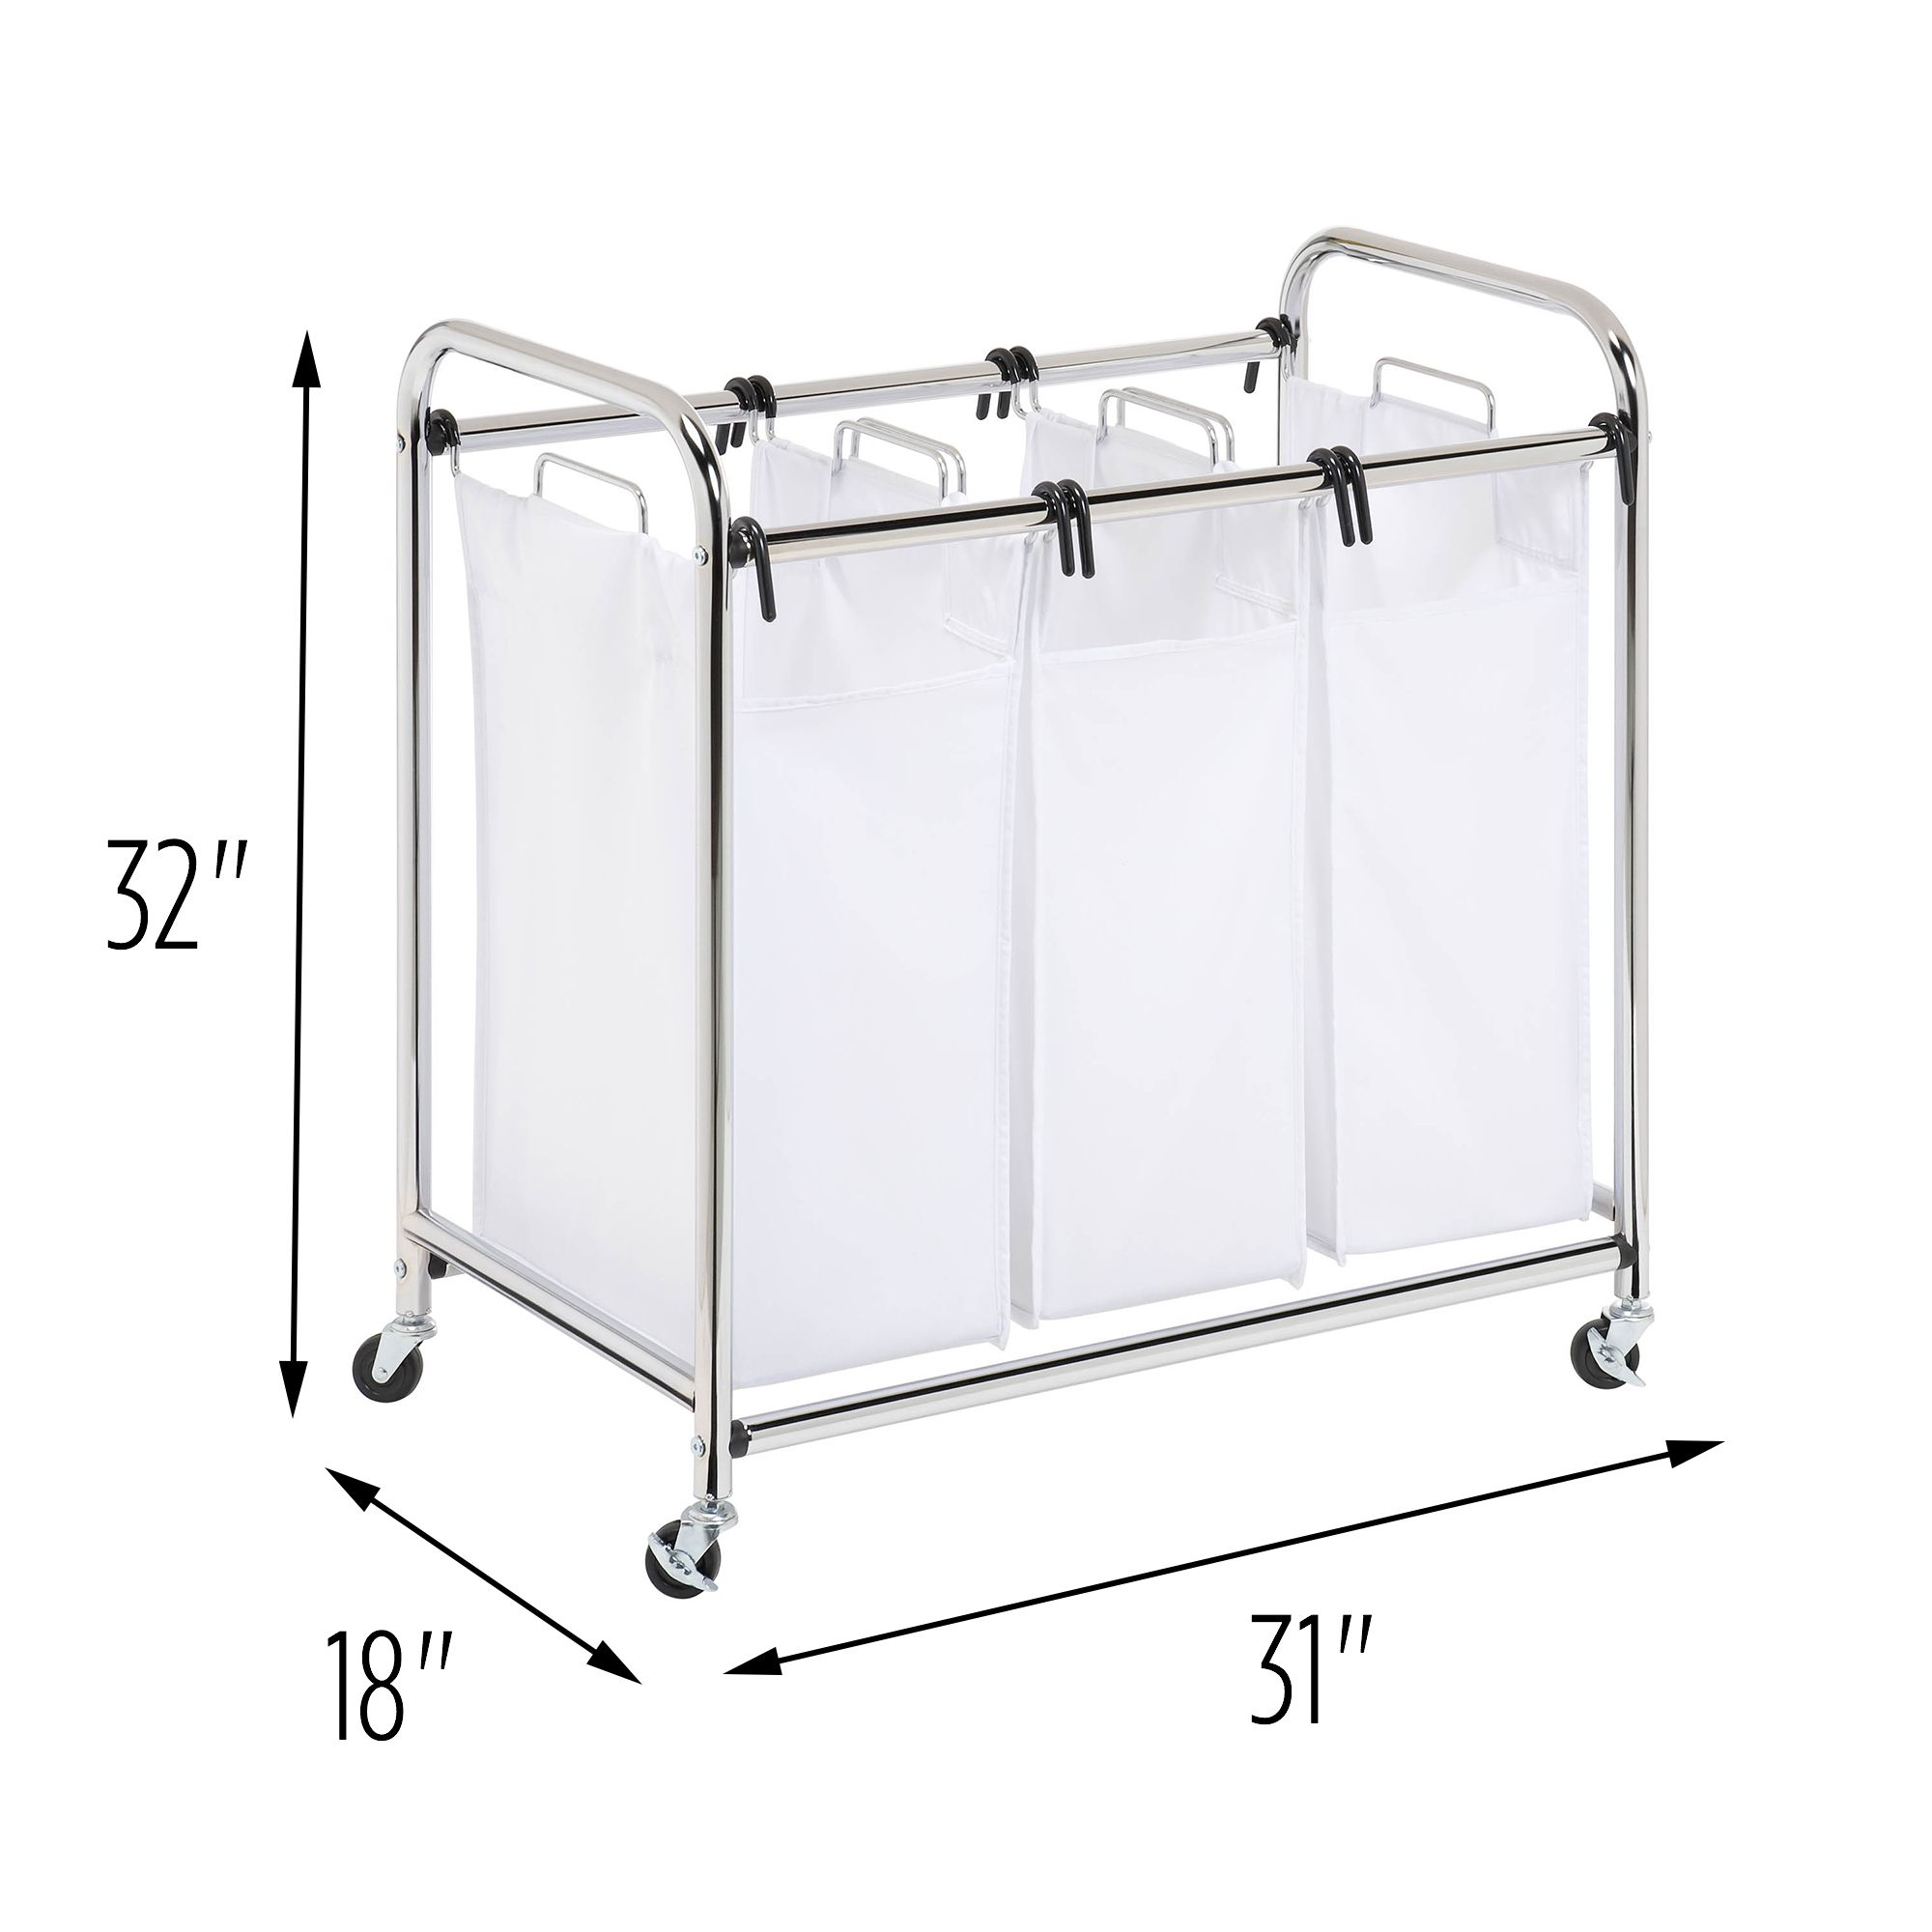 Large Capacity Wire Frame Metal Laundry Cart Walmart Com In 2020